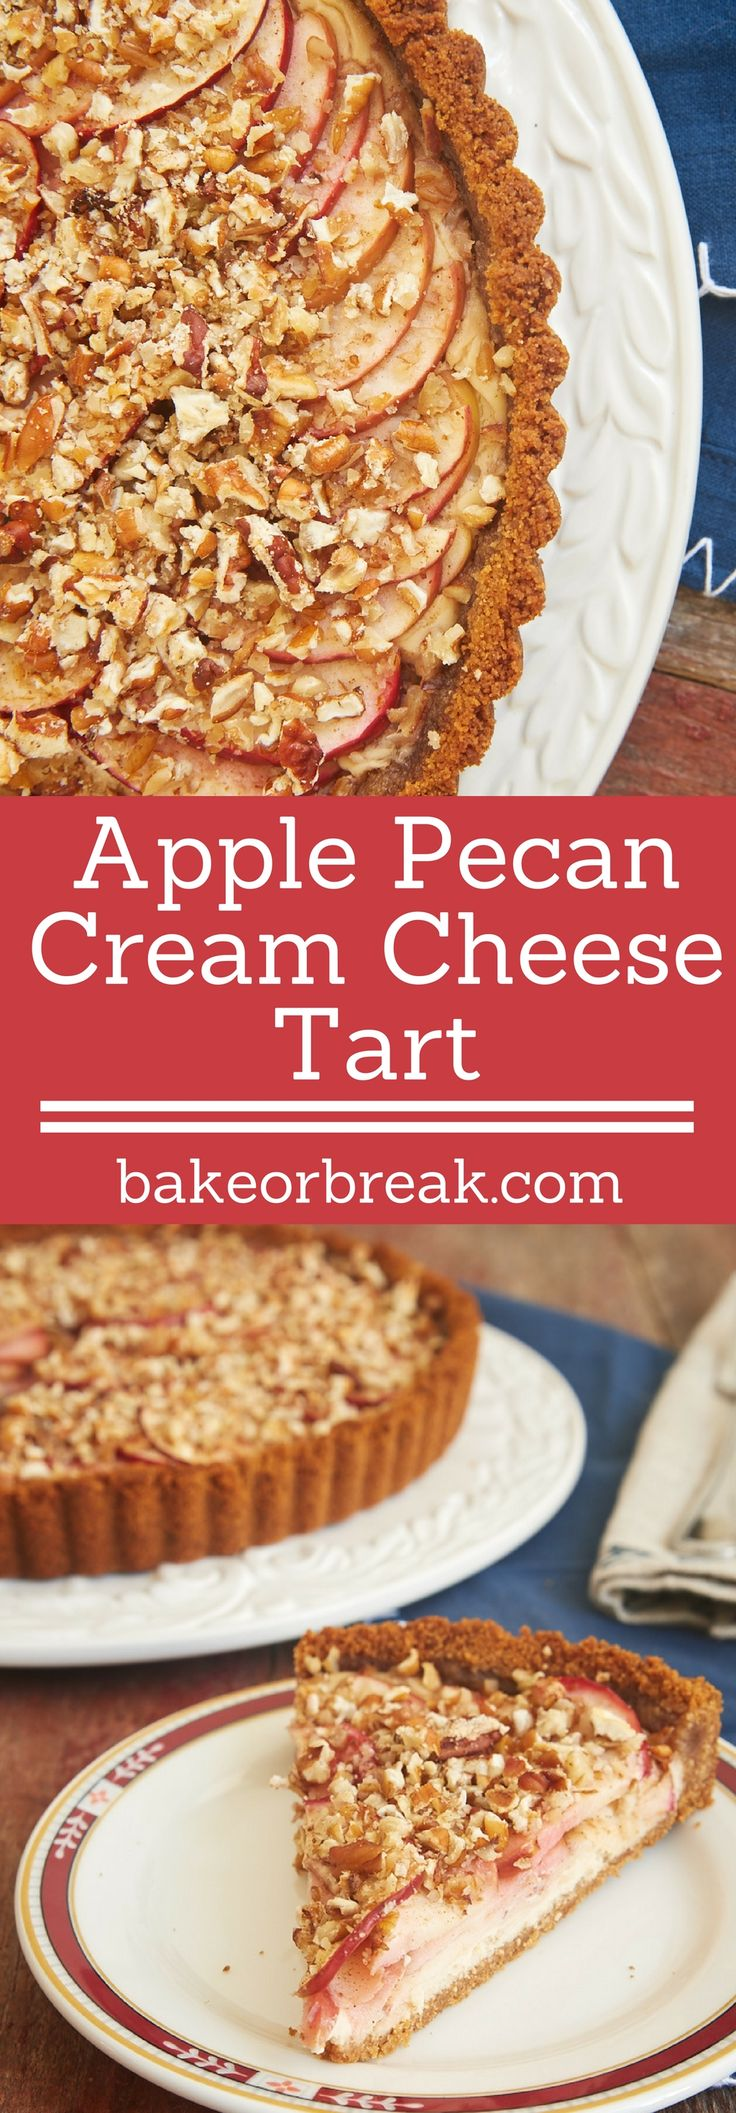 ... images about Pies & Tarts on Pinterest | Hand pies, Tarts and Slab Pie